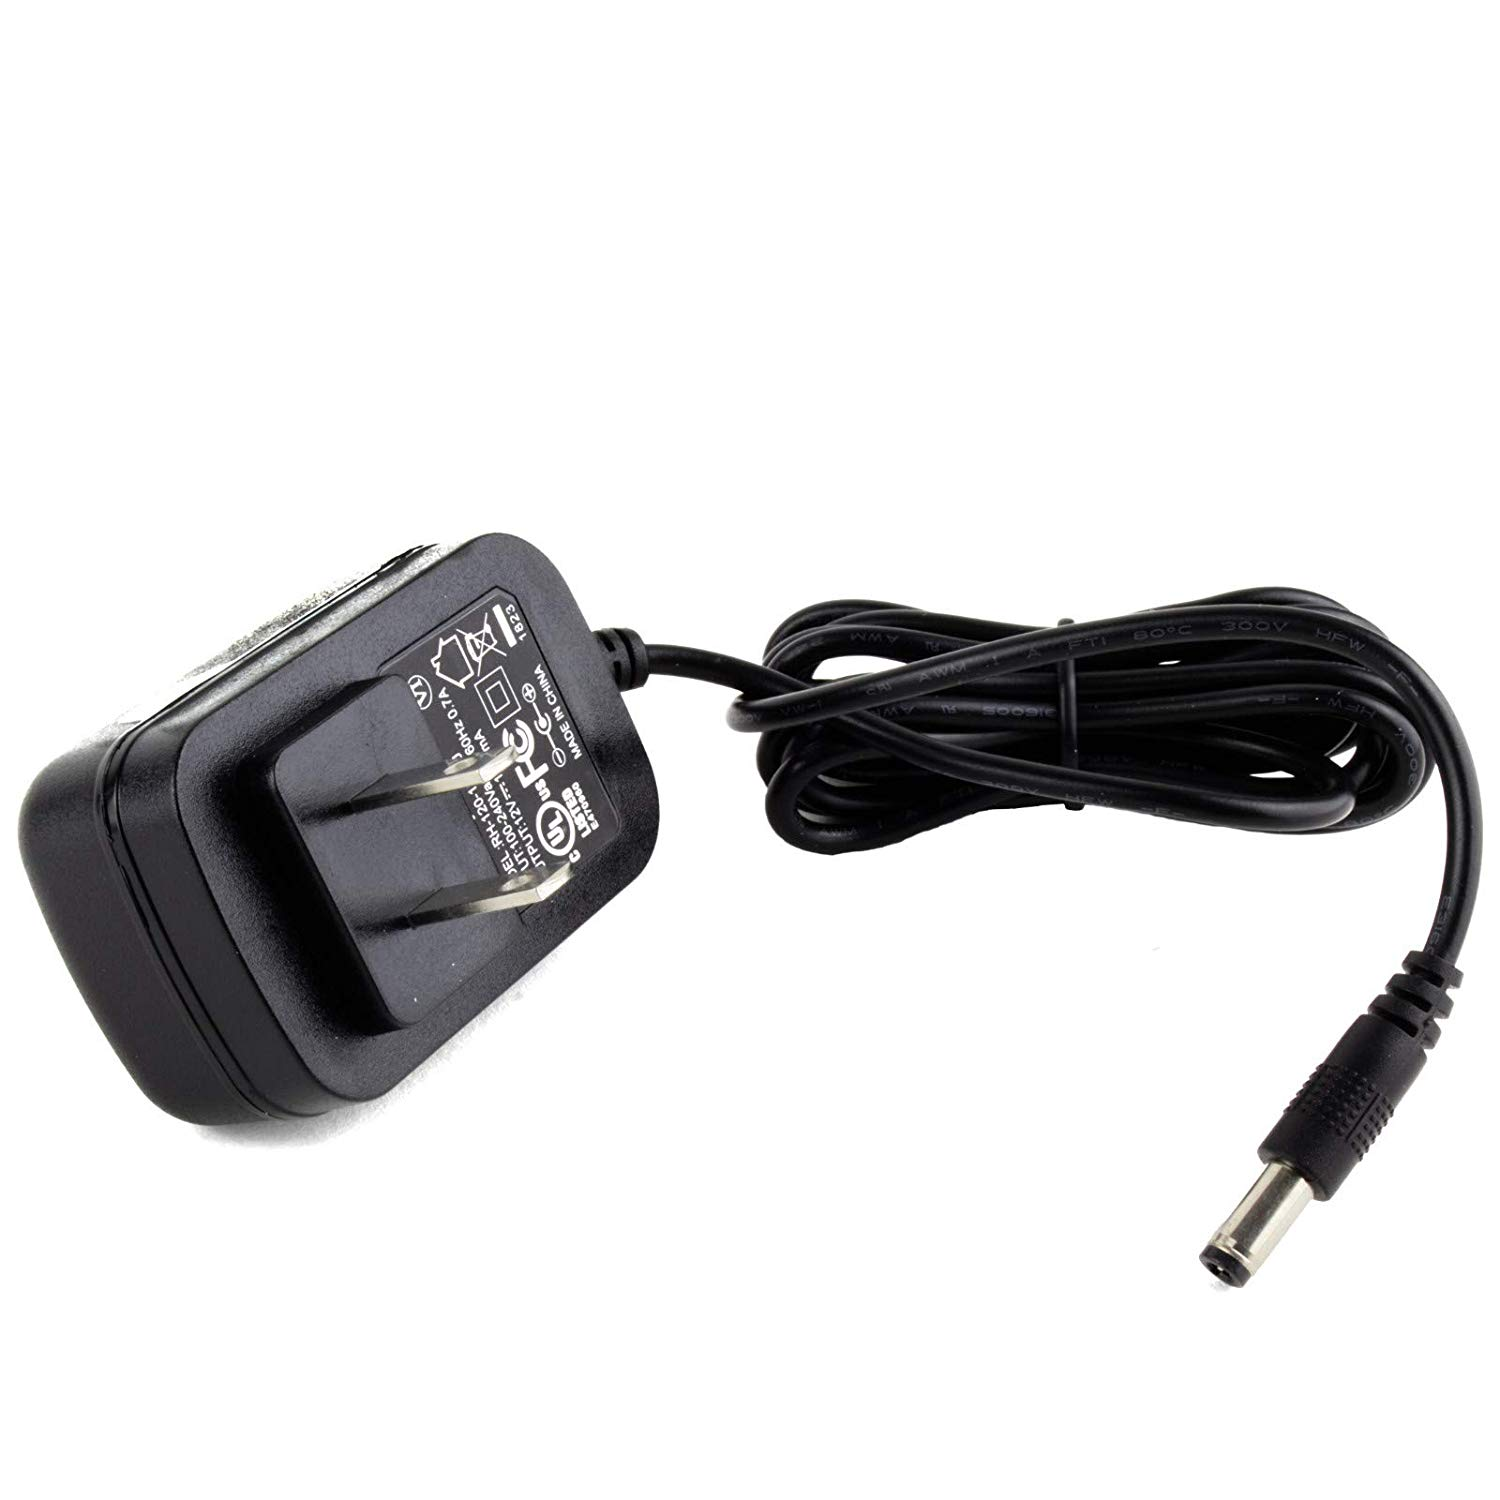 DC Adapter For Roland FP-7 FP-7F C-190 Piano Keyboard Boss Power Supply 12V AC